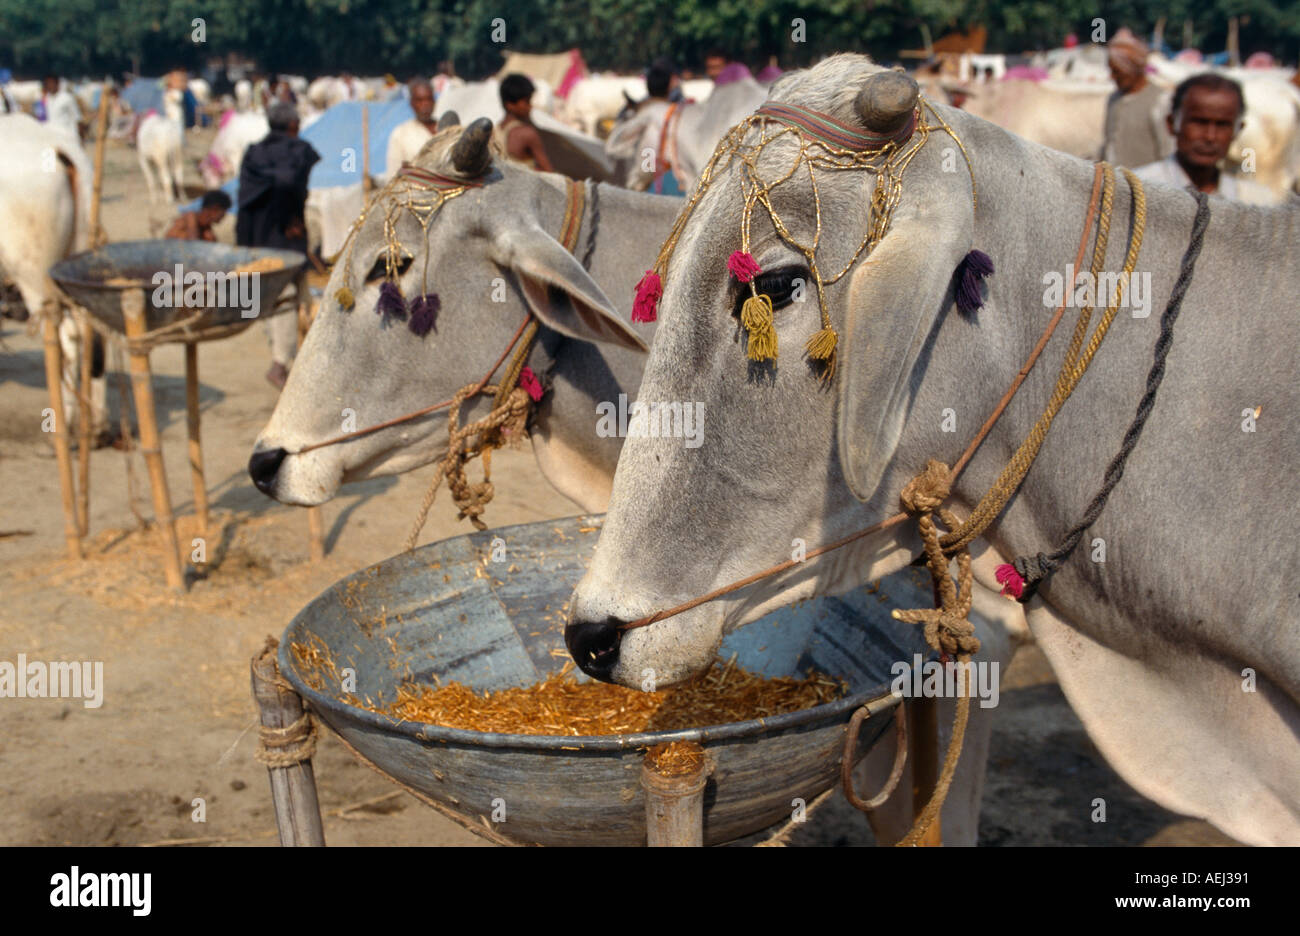 Cattle for sale at the Sonepur Mela, Sonepur, Bihar, India - Stock Image